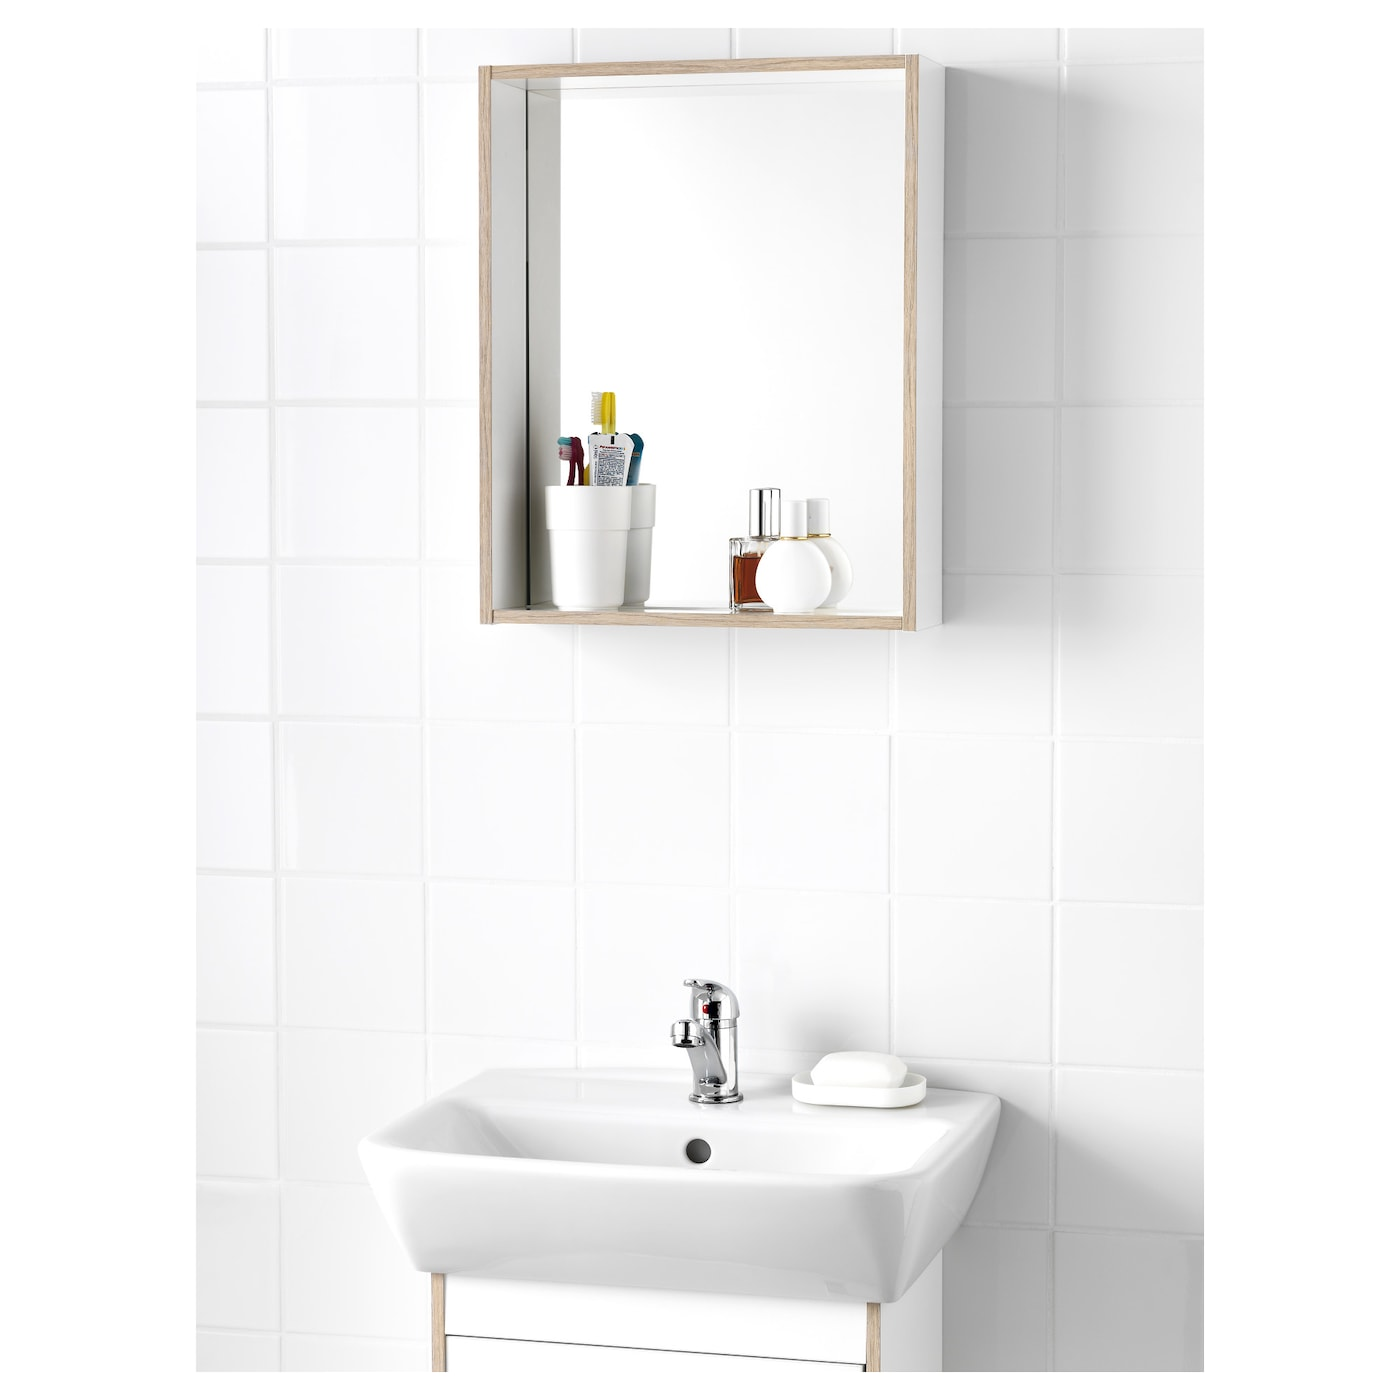 Tyngen mirror with shelf white ash effect 40x12x50 cm ikea - Ikea miroirs deco ...